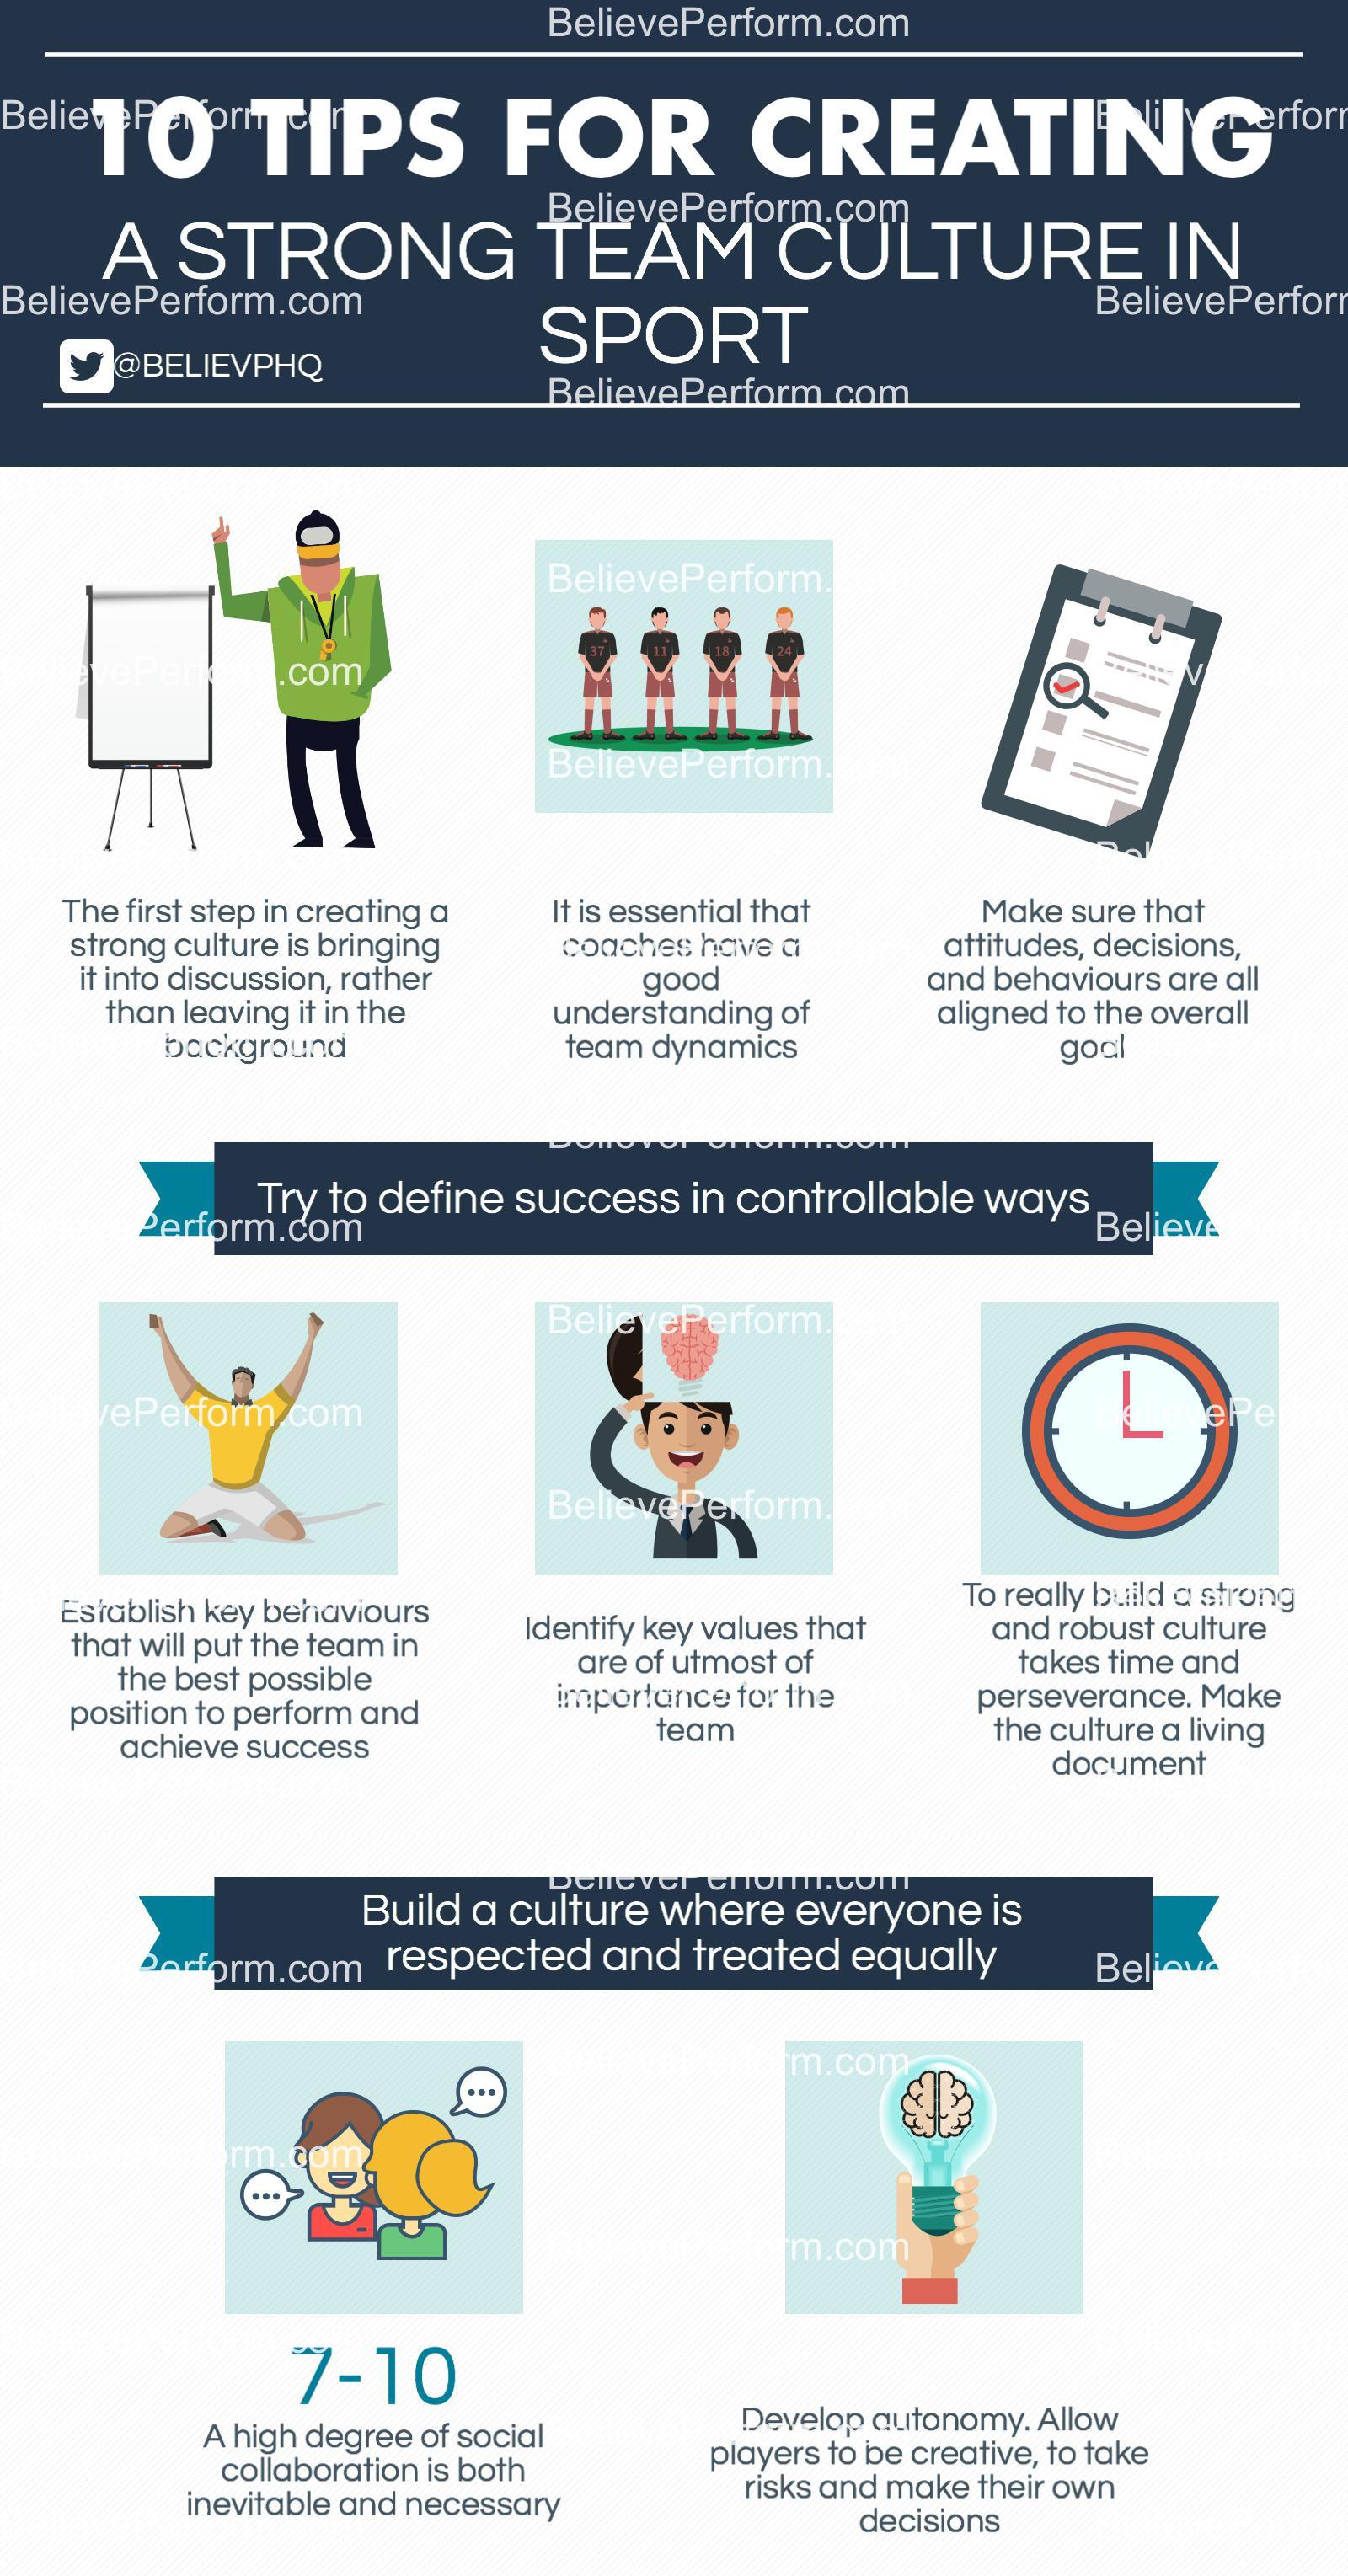 10 tips for creating a strong team culture in sport